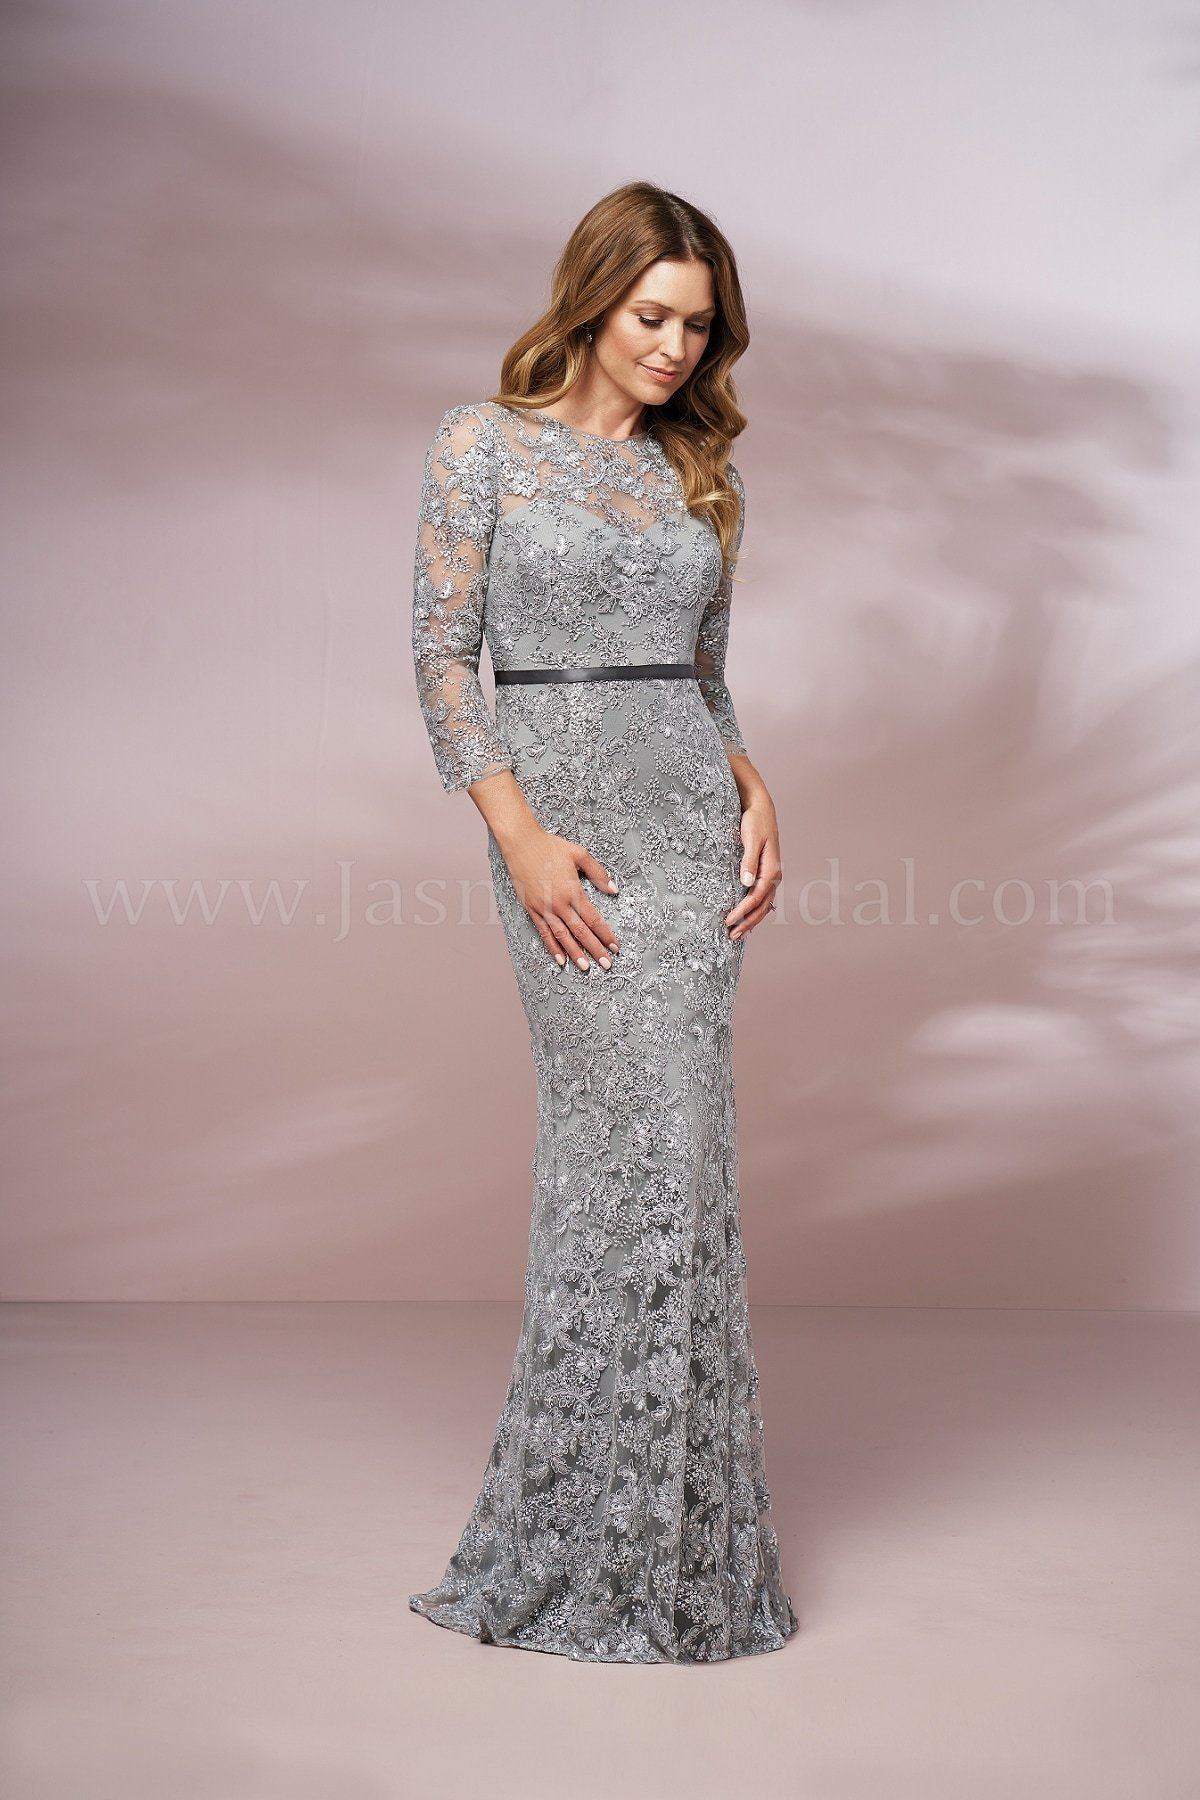 mother-of-the-bride-dresses-J205016-F